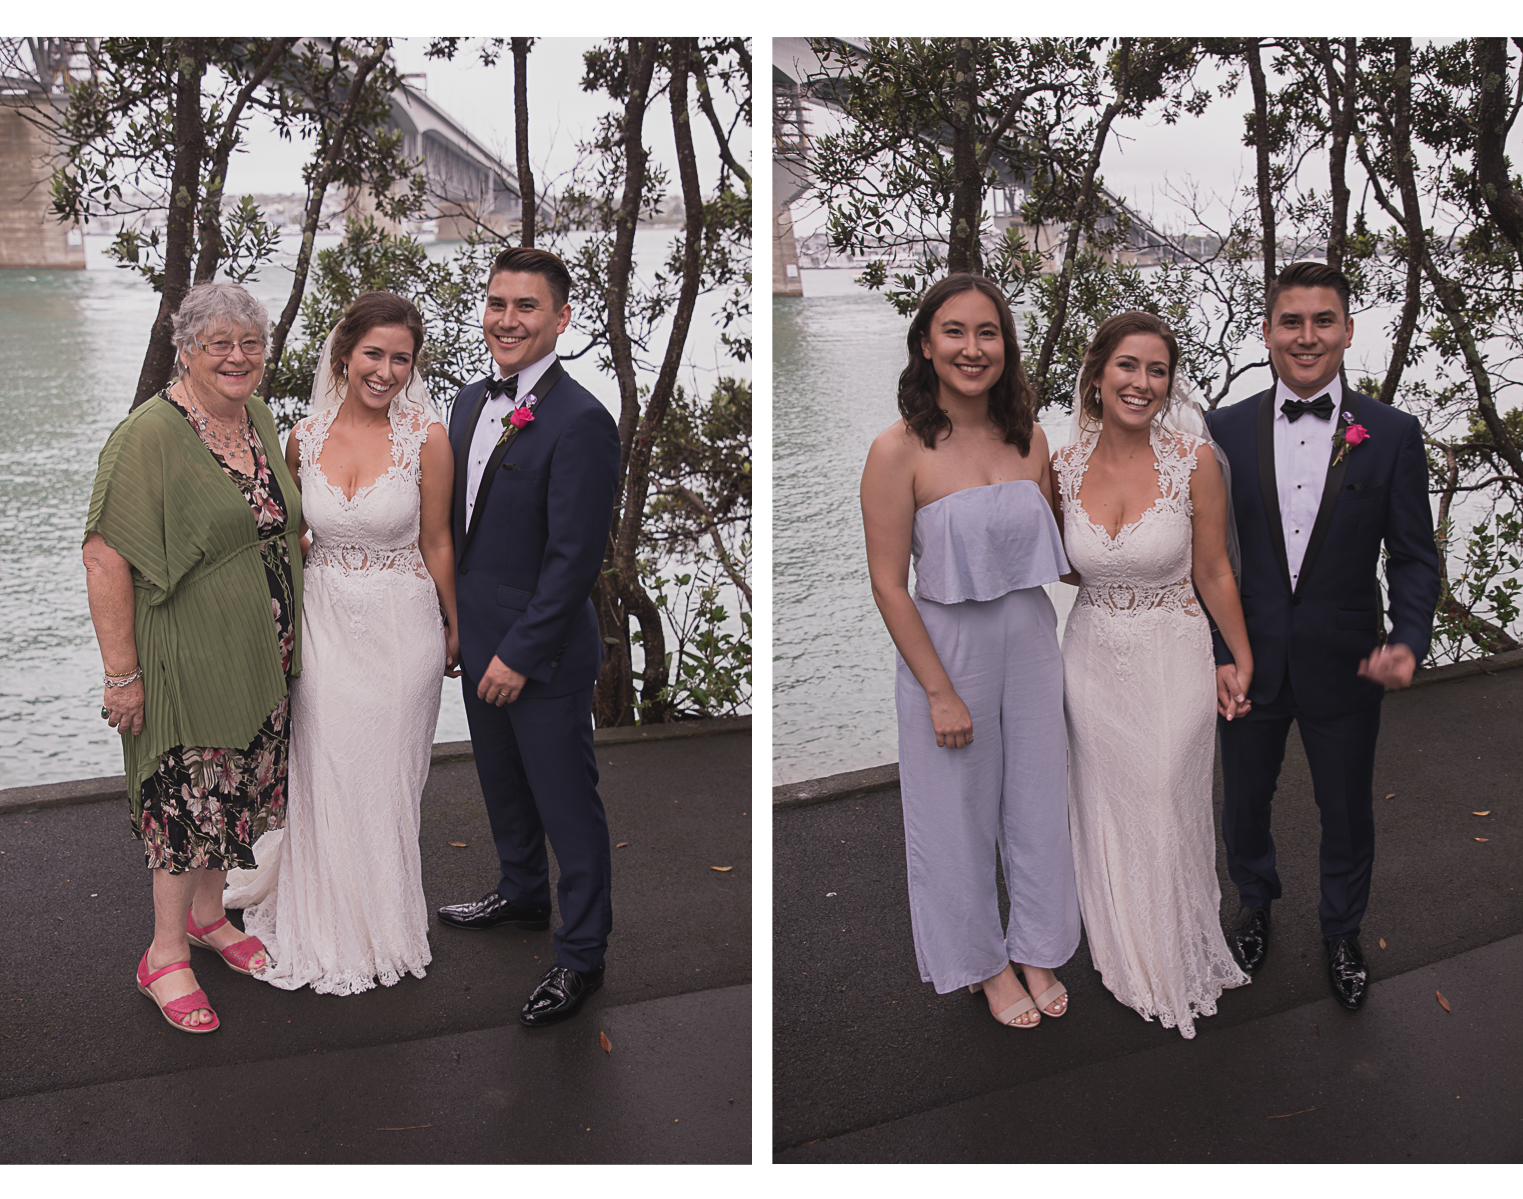 photos with guests at wedding